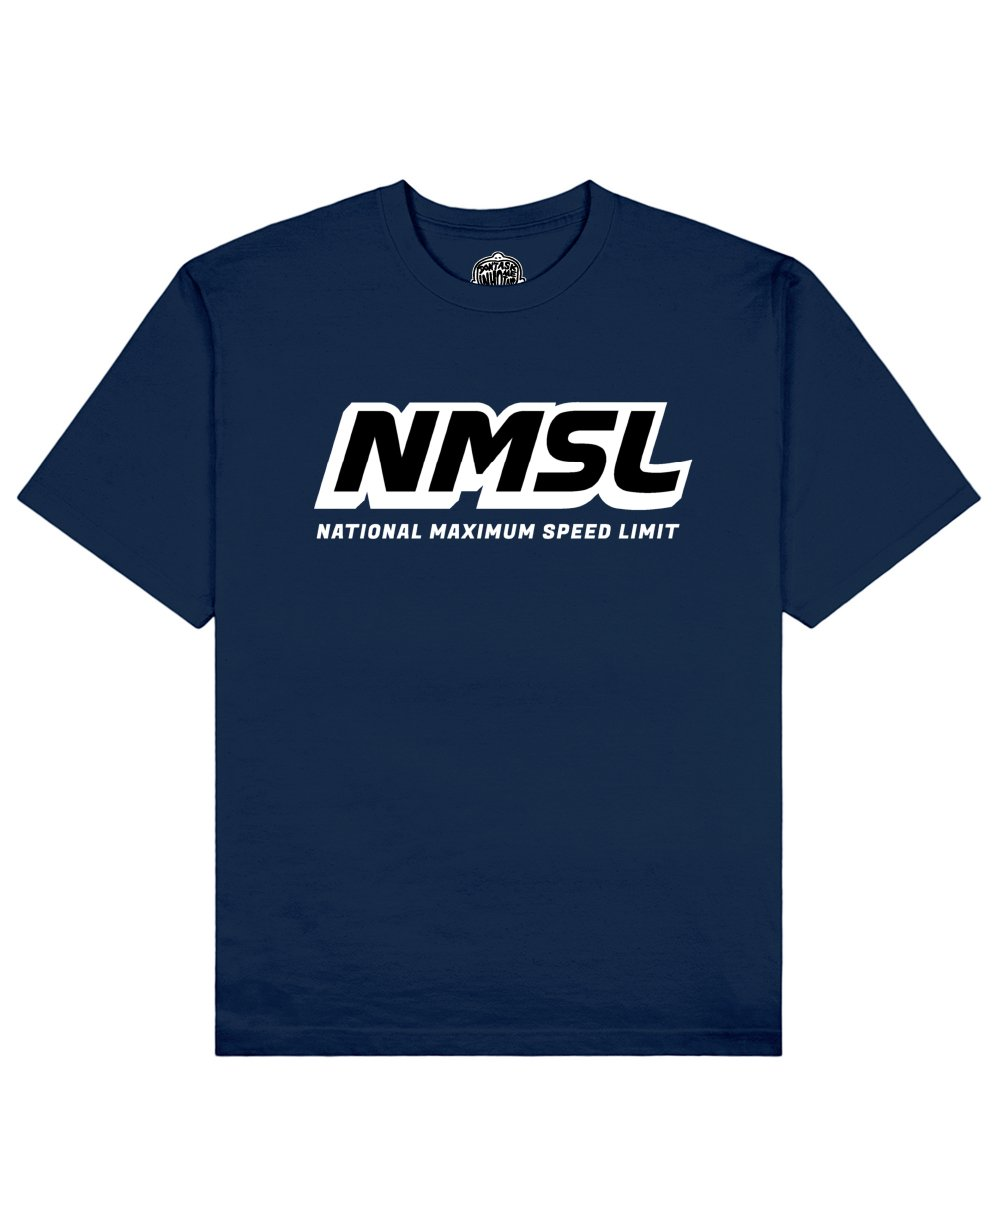 NMSL Print T-shirt in Blue - T-Shirts - Don't ask me who I am - BRANMA